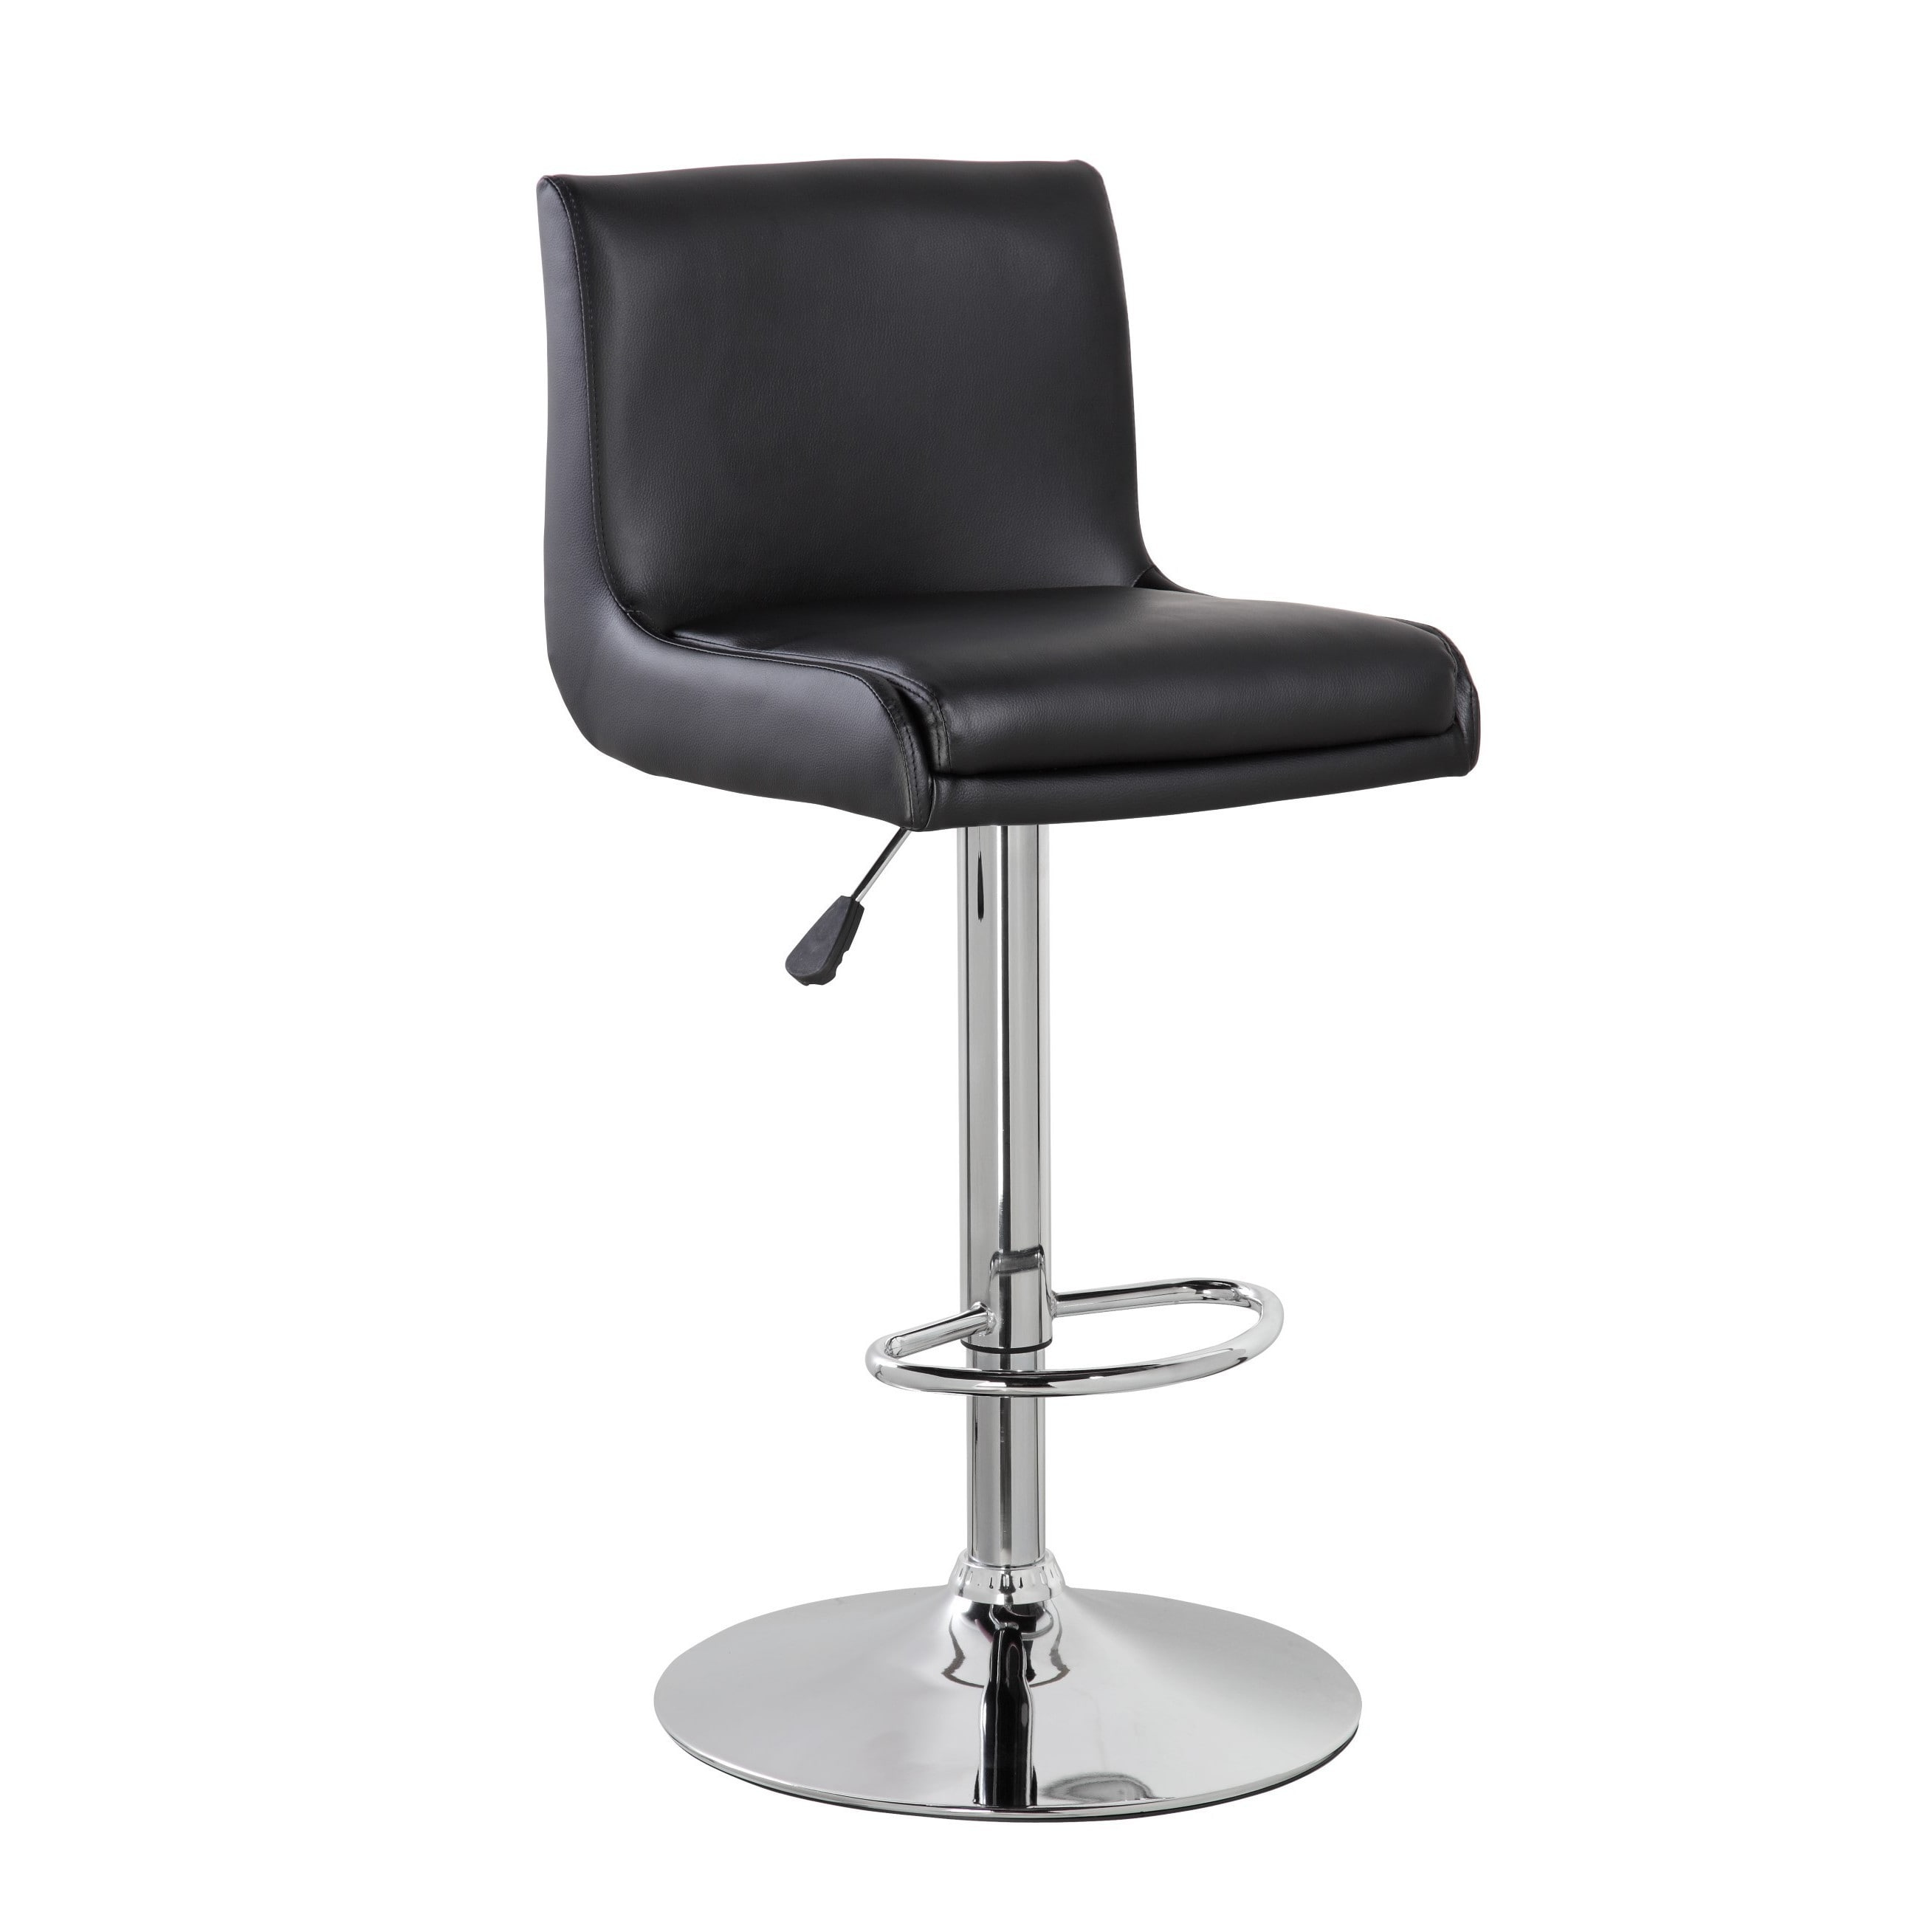 united chair medical stool ll bean all weather adirondack office chrome and faux leather airlift